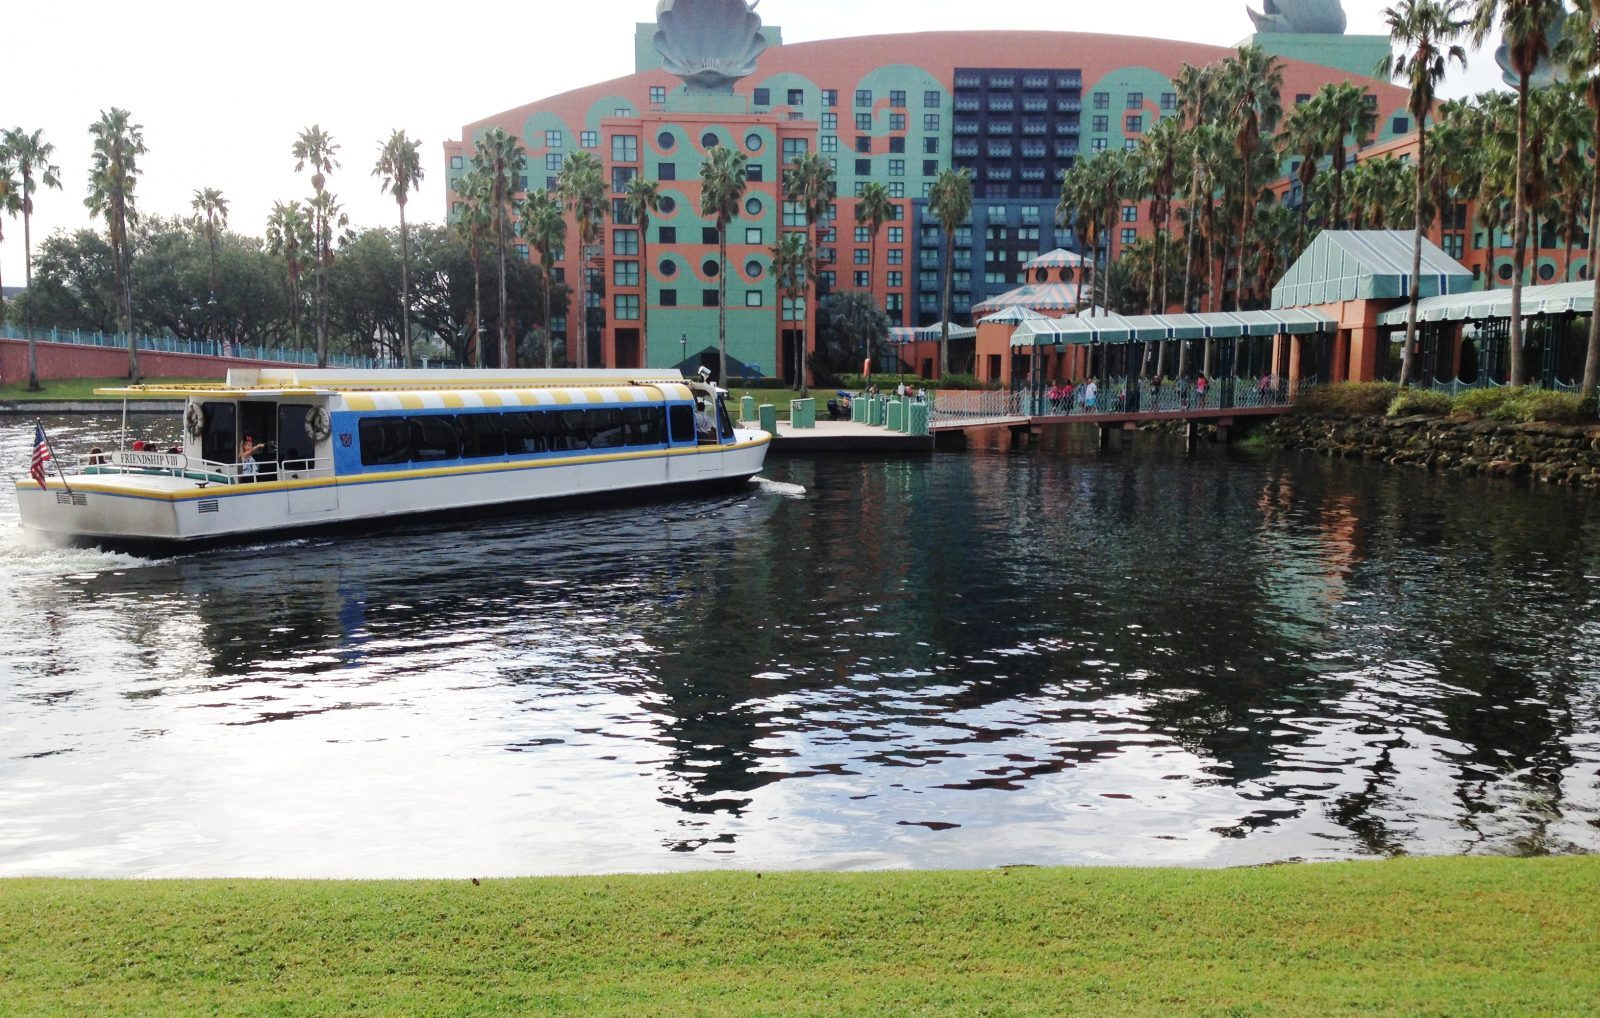 Friendship boat at Swan and Dolphin Resort Dock